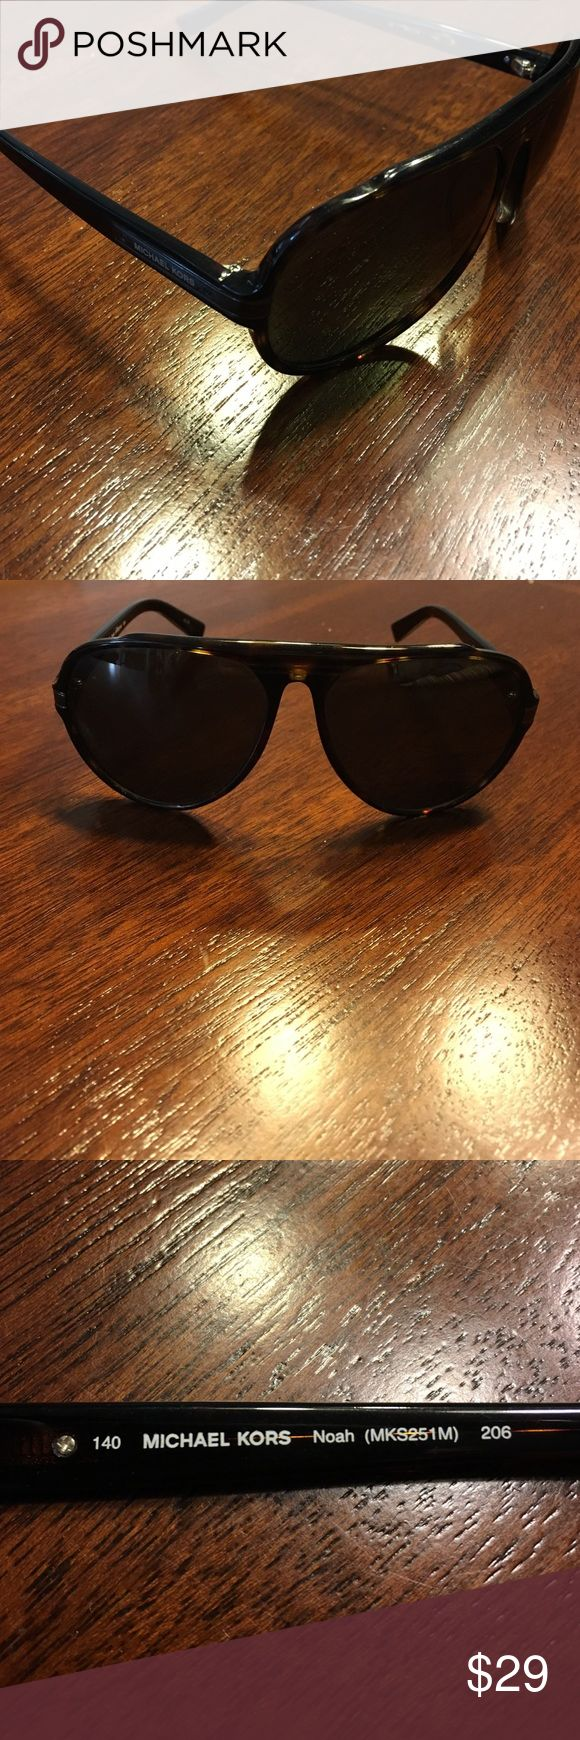 AUTHENTIC MICHAEL KORS Tortoise Sunglasses -Unisex These Michael Kors Sunglasses are a plastic aviator with etched detailing on the bridge. The Michael Kors logo is engraved on the temples. Unisex. Tortoise color. In superb shape with only minor scratches. No case is included, will package accordingly. *ANY REASONABLE OFFER CONSIDERED* Michael Kors Accessories Sunglasses